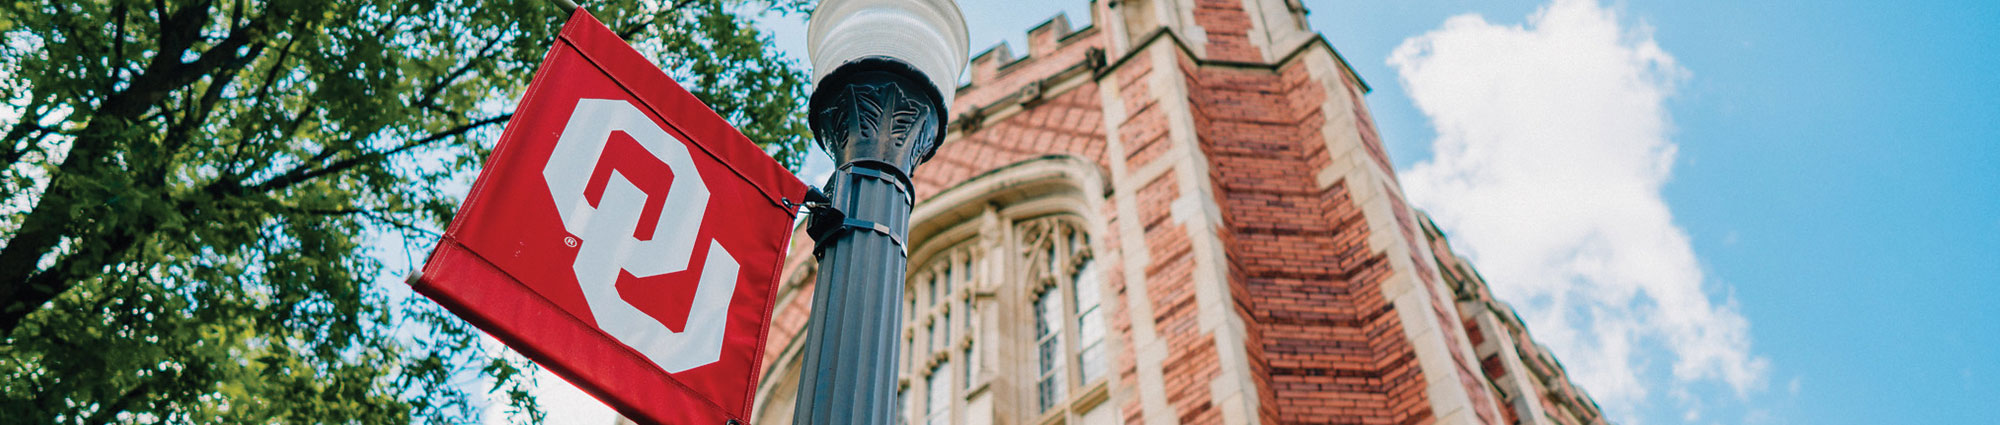 ou flag on lamp pole with brick building in the background